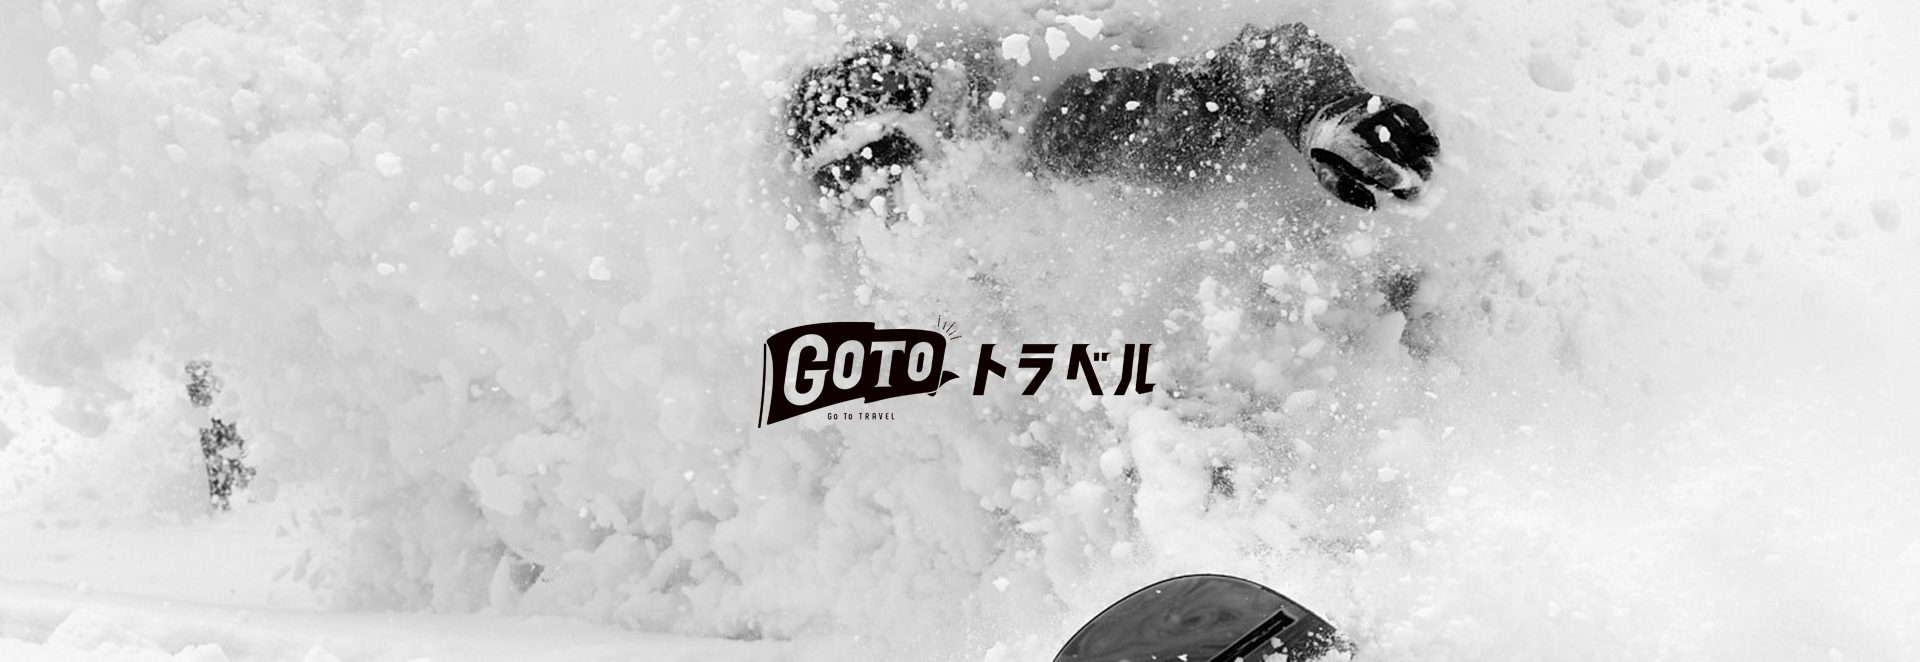 GoTo travel - Ski & Snowboard in powdery snow - Kodama Lodge - Japan - Home